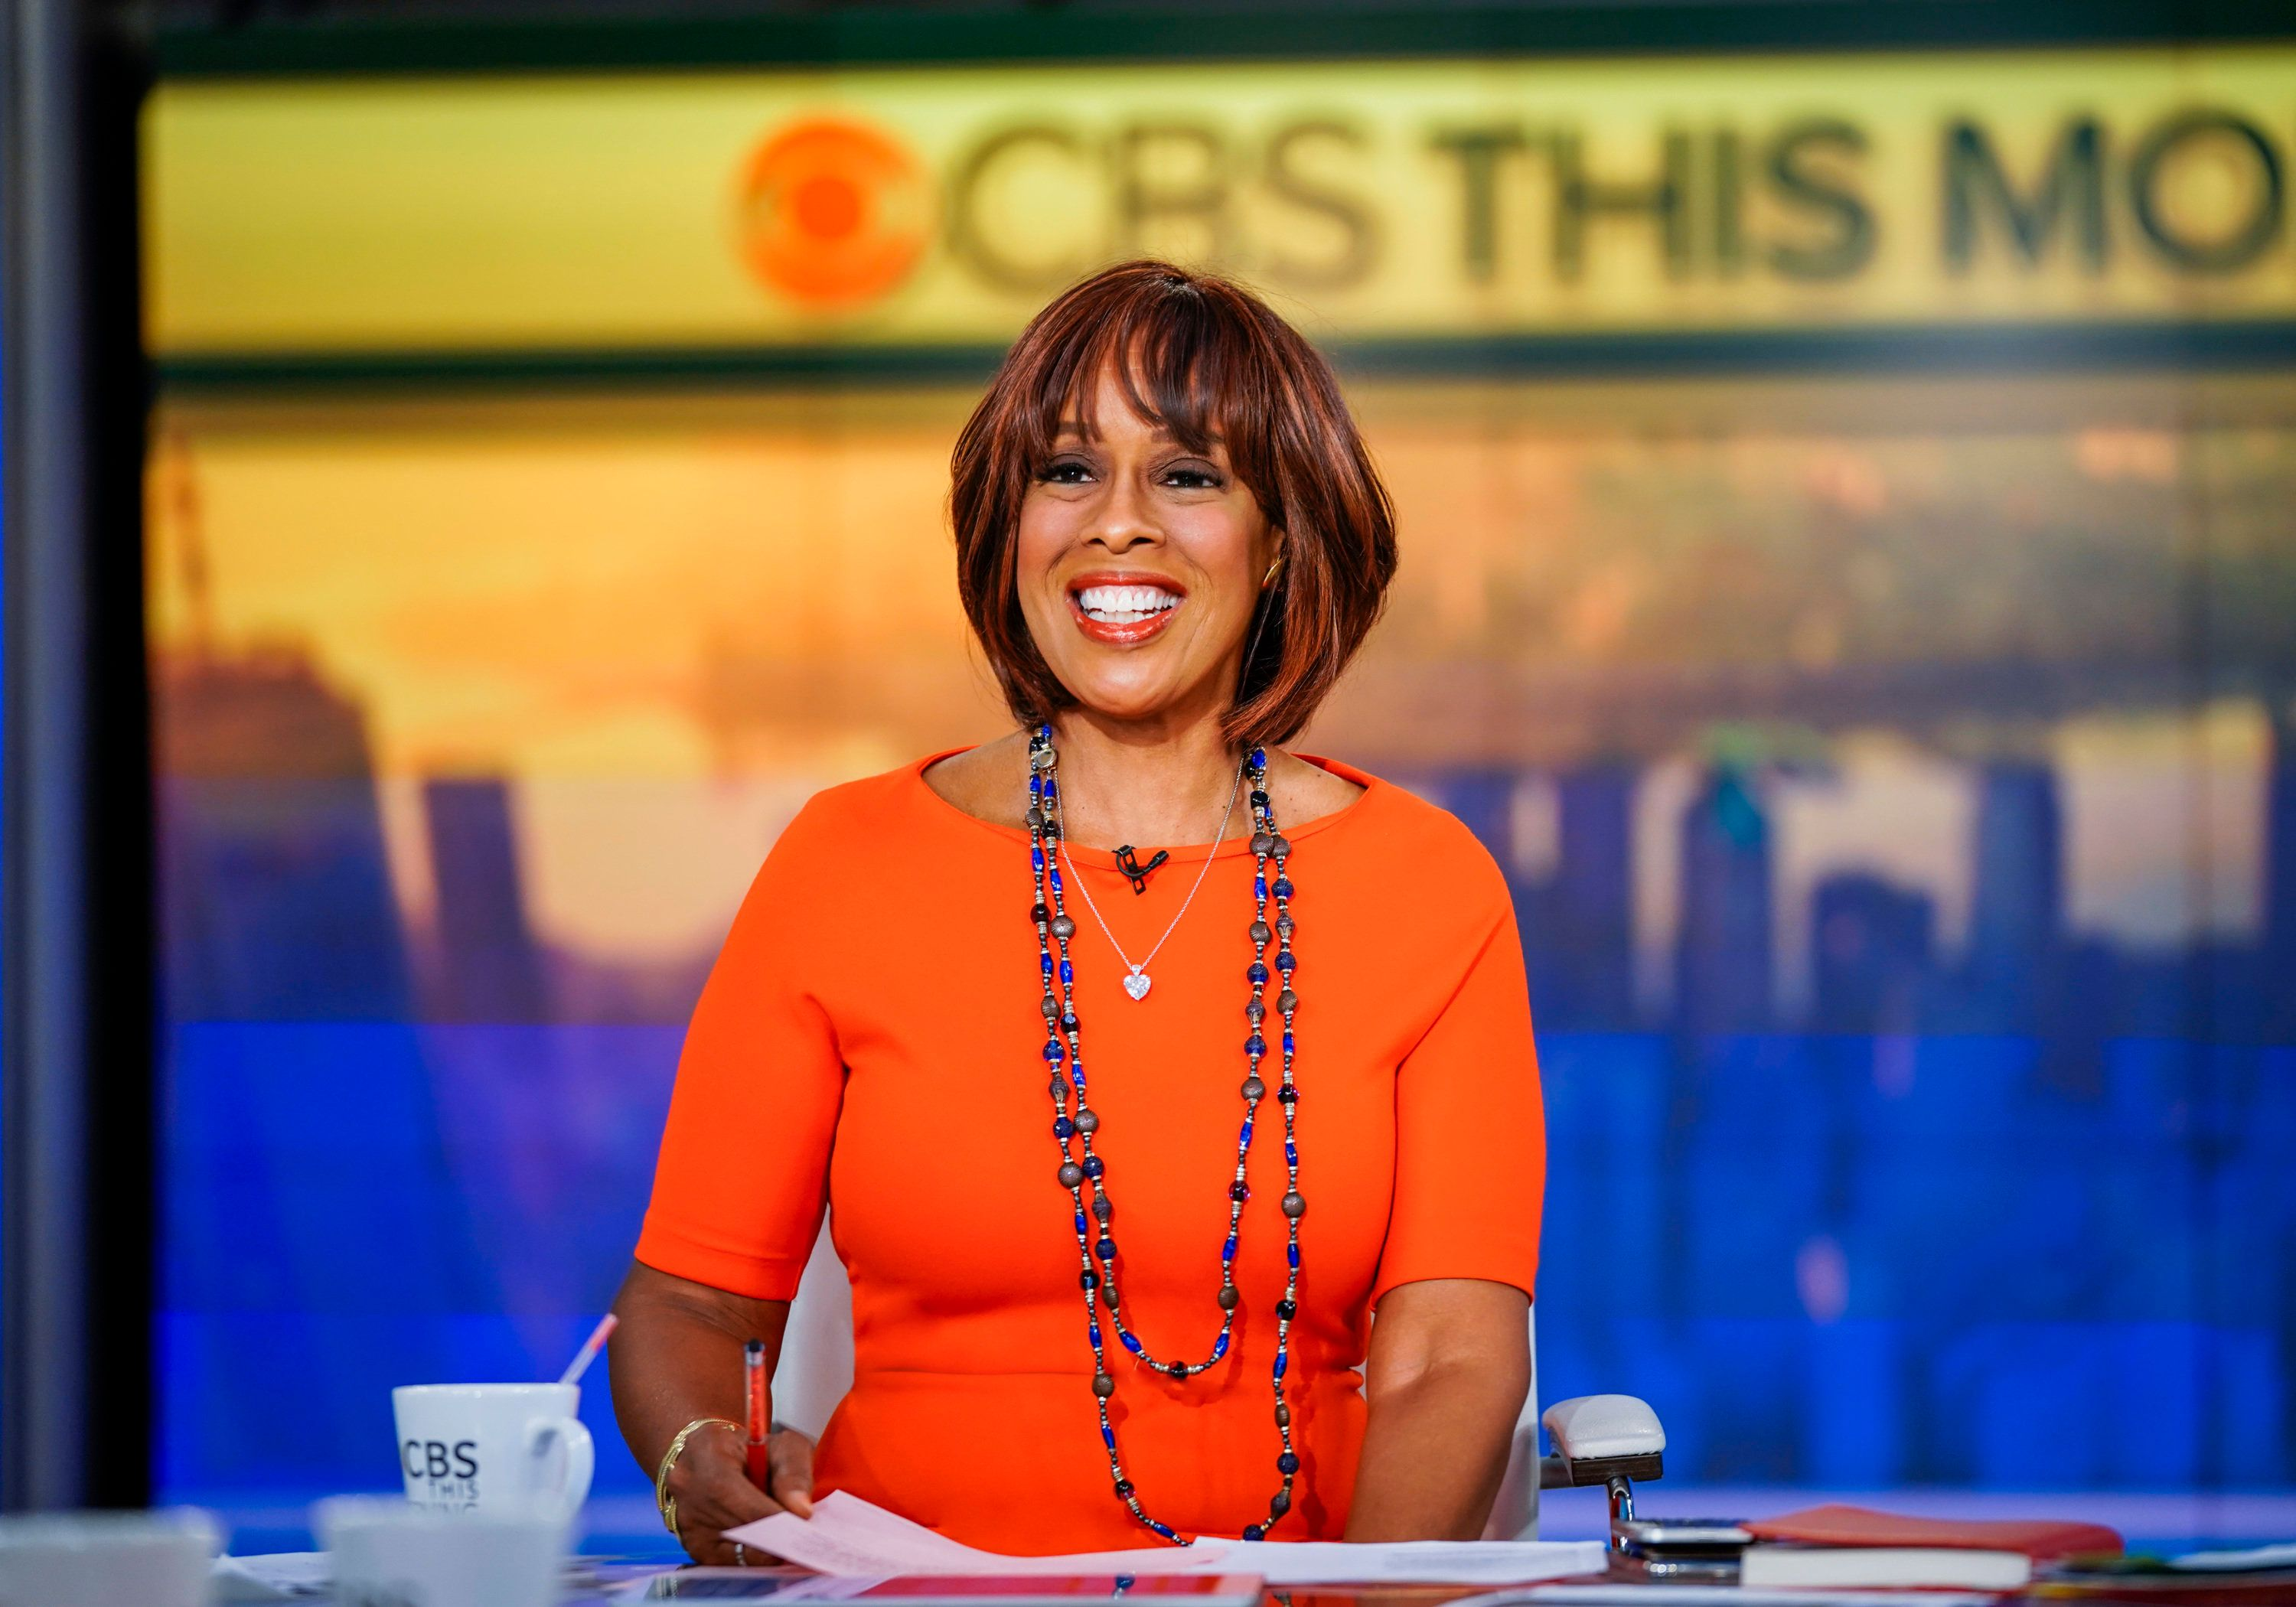 NEW YORK - OCTOBER 10: Gayle King, CO-HOST OF 'CBS THIS MORNING.' (Photo by Michele Crowe/CBS via Getty Images)